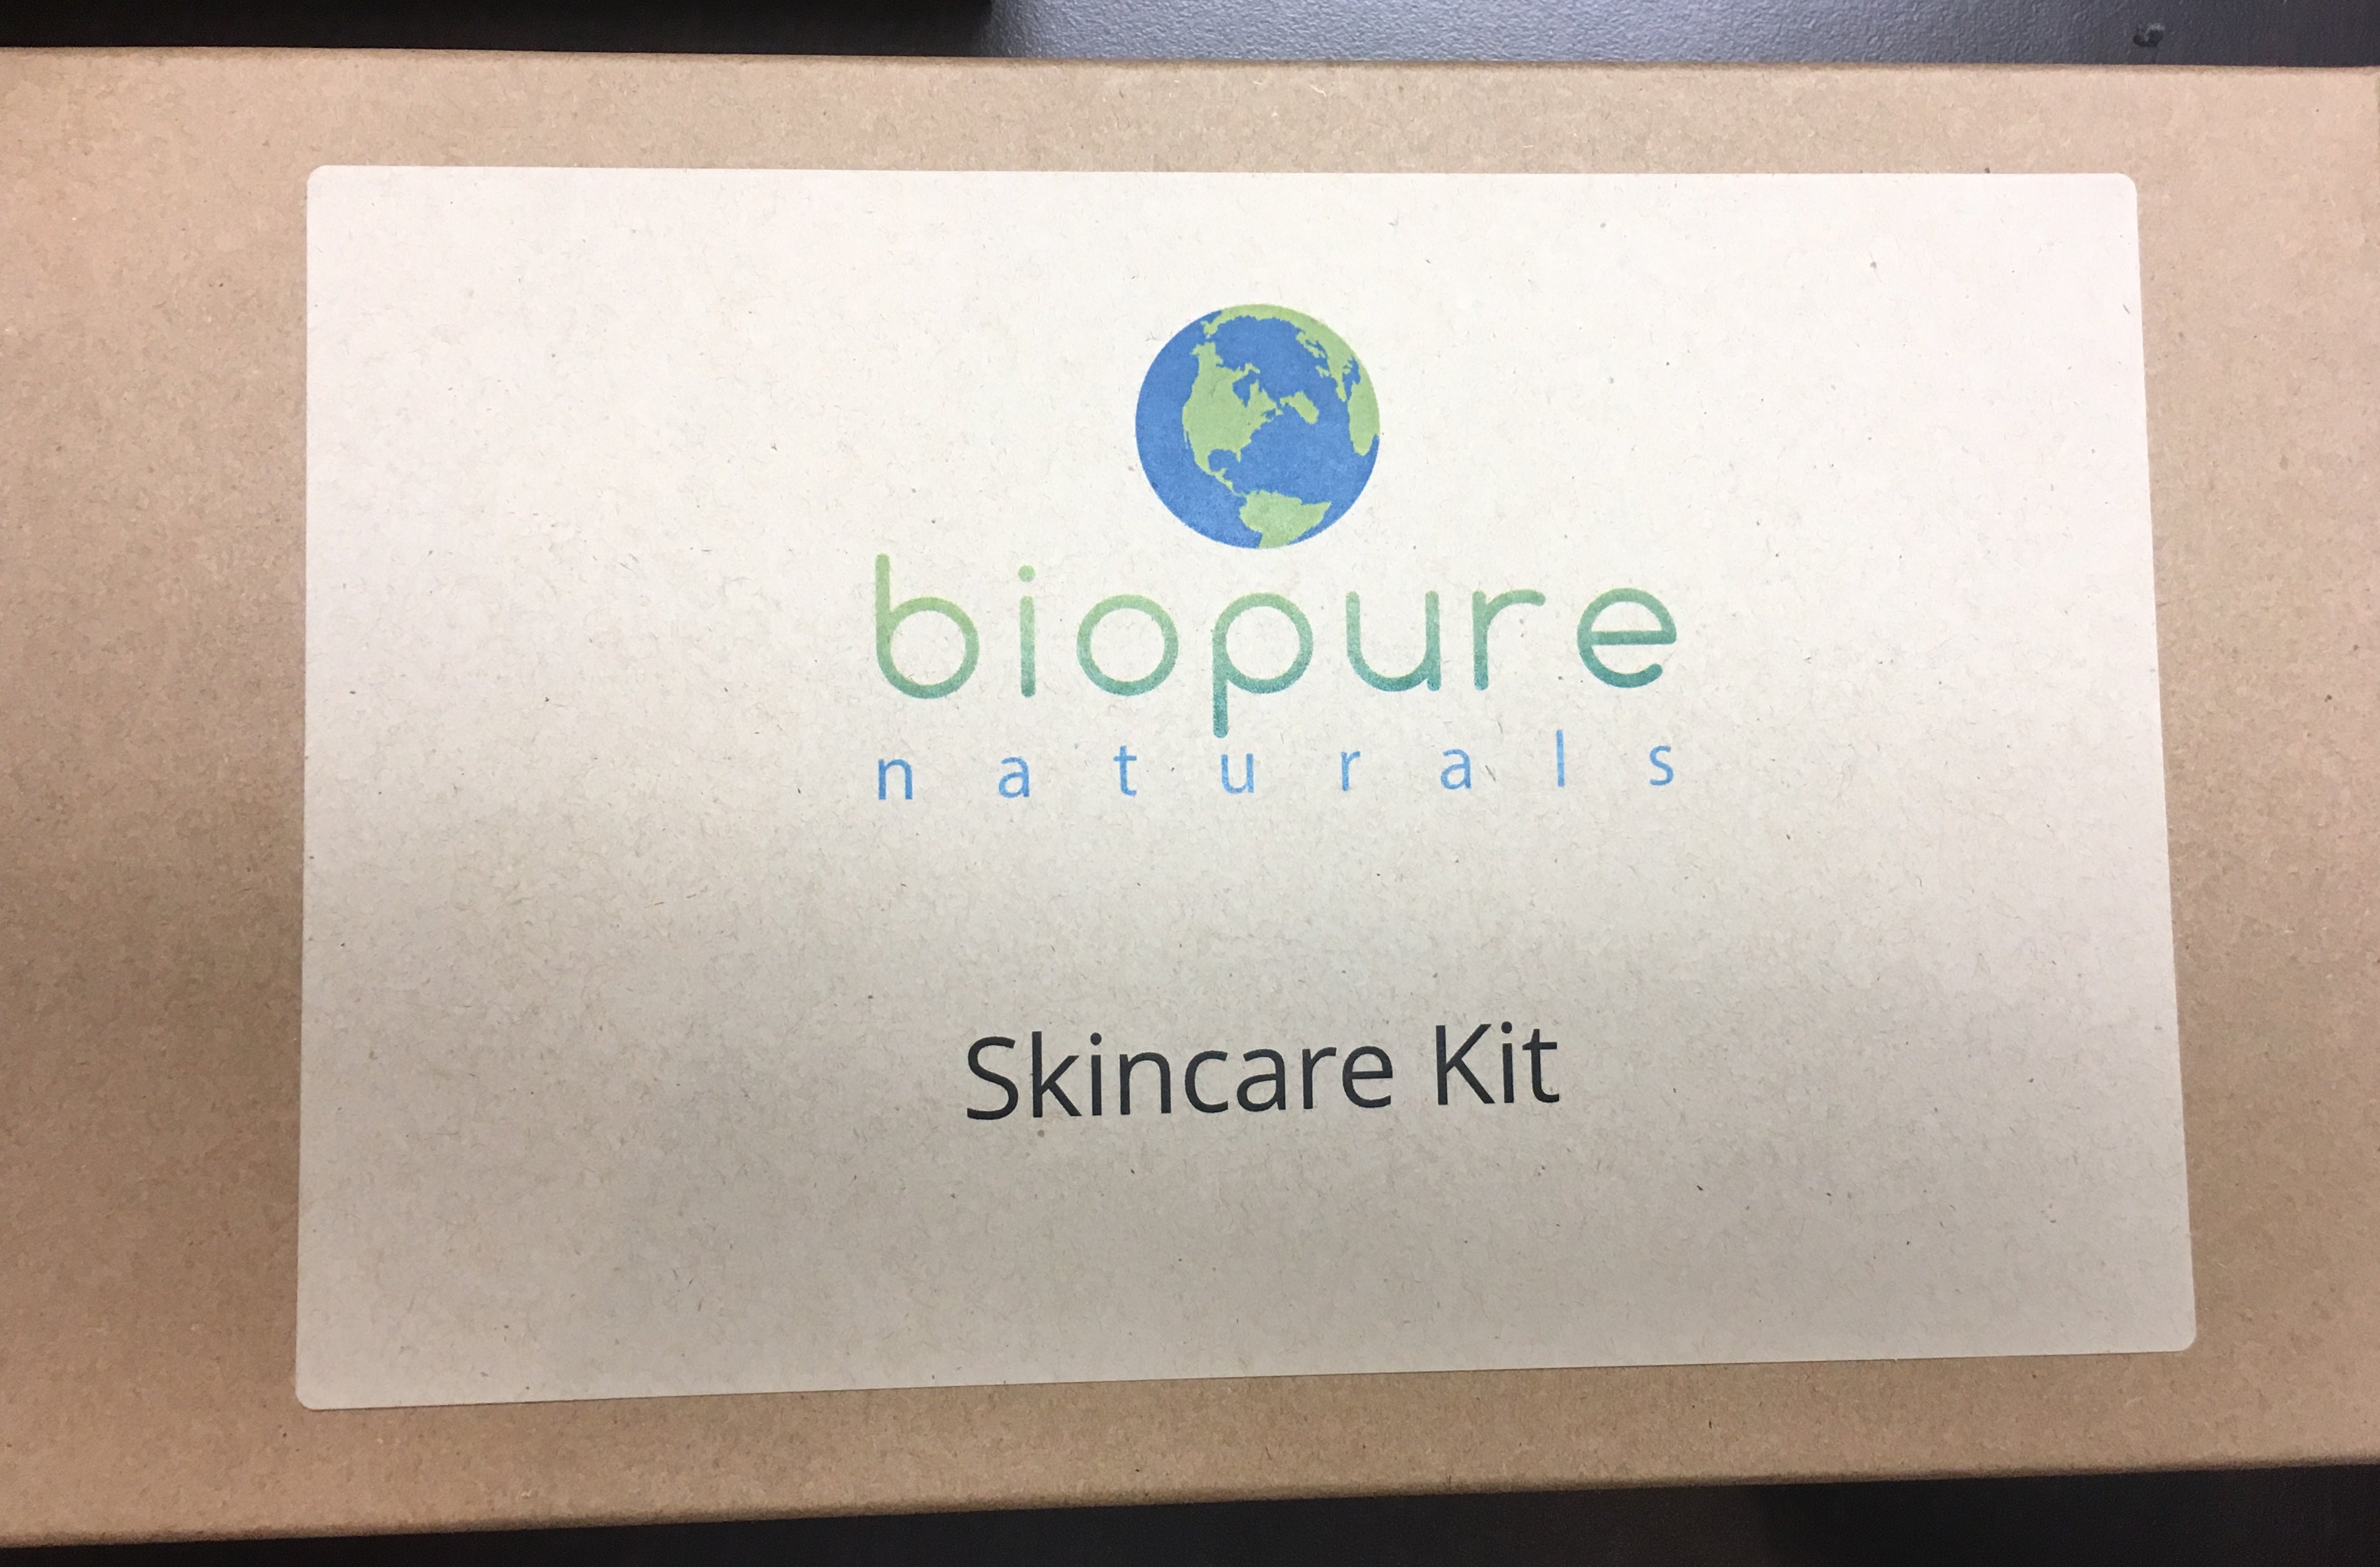 Skincare Kit - Skin Type Kit Aqua (Water) for Anti-aging and Dry Skin Types